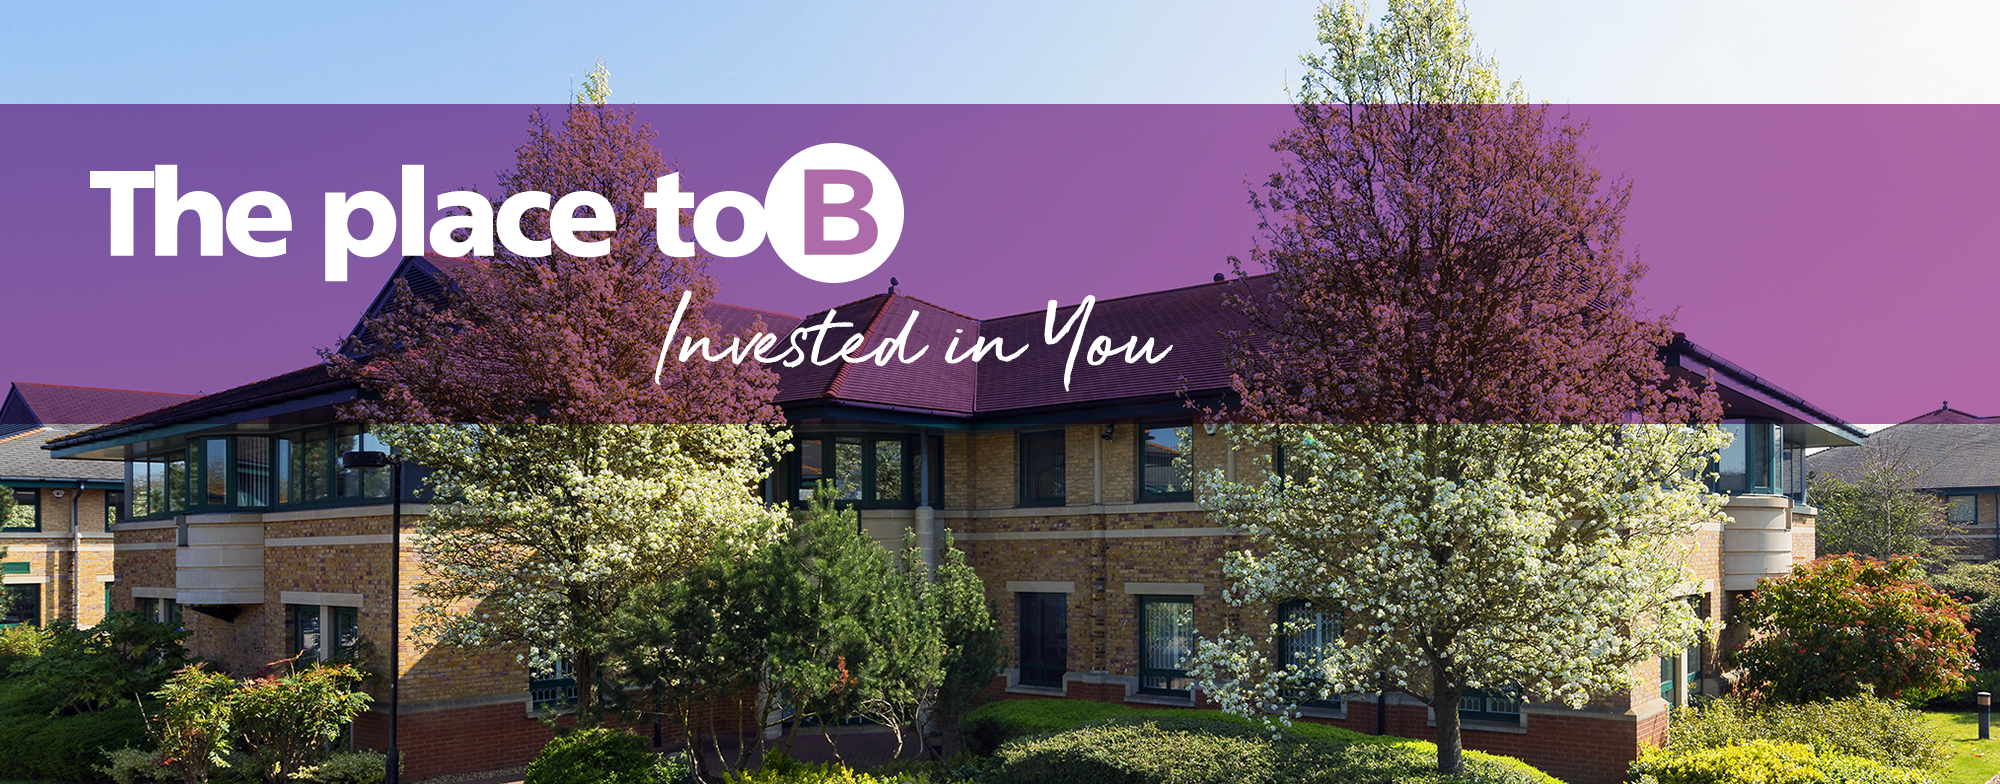 Birmingham Business Park - The Place toB. Invested in you